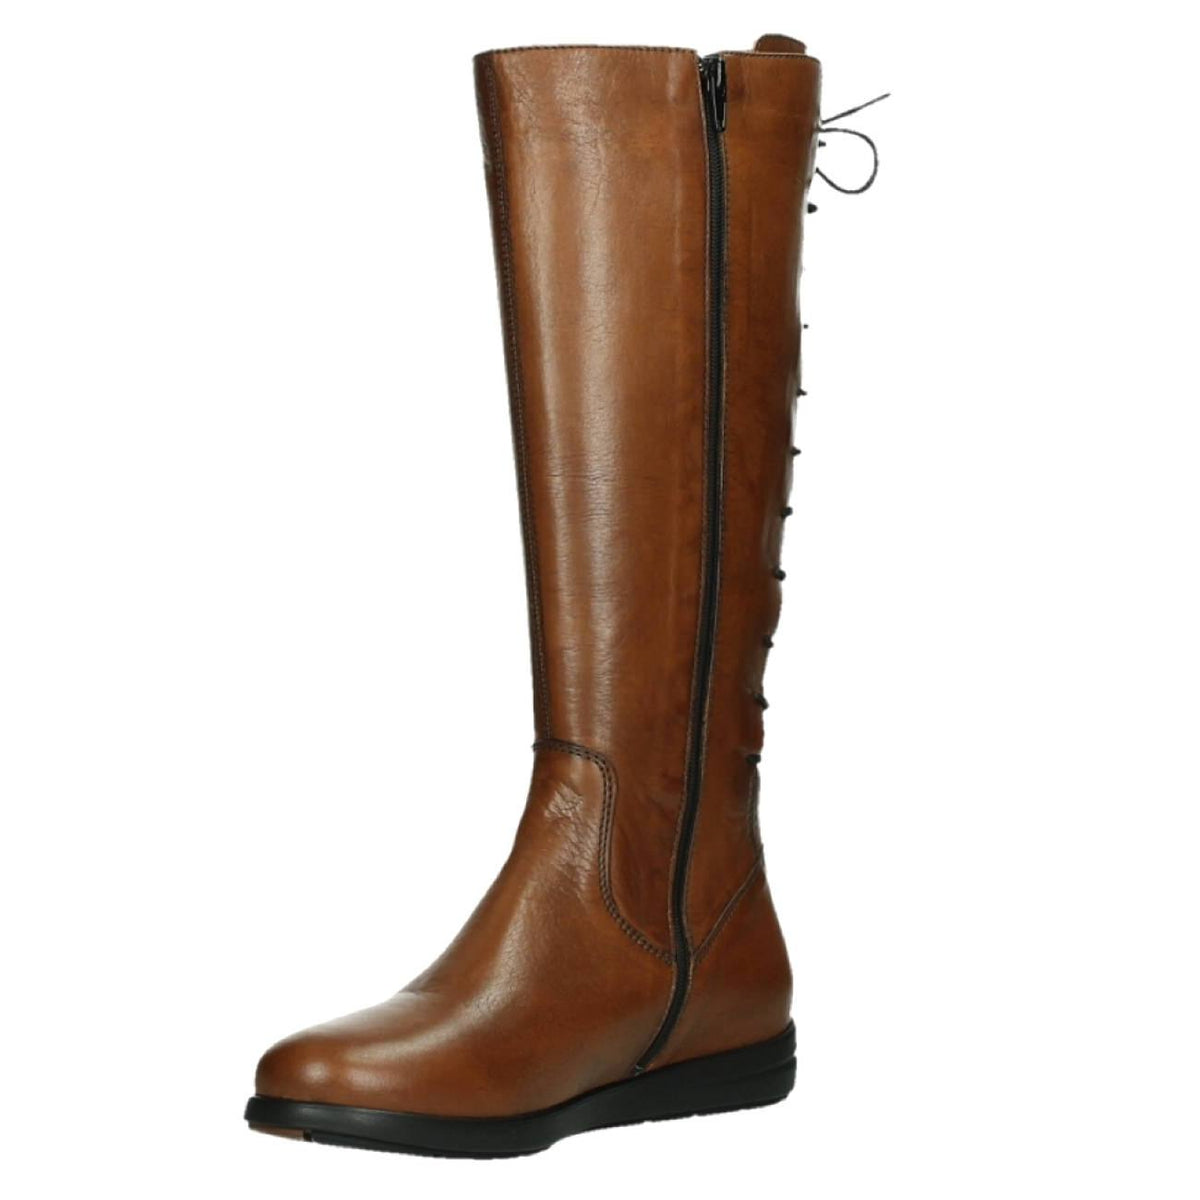 Wolky, Vector, Boots, Velvet Leather, Ladies, Cognac Boots Wolky